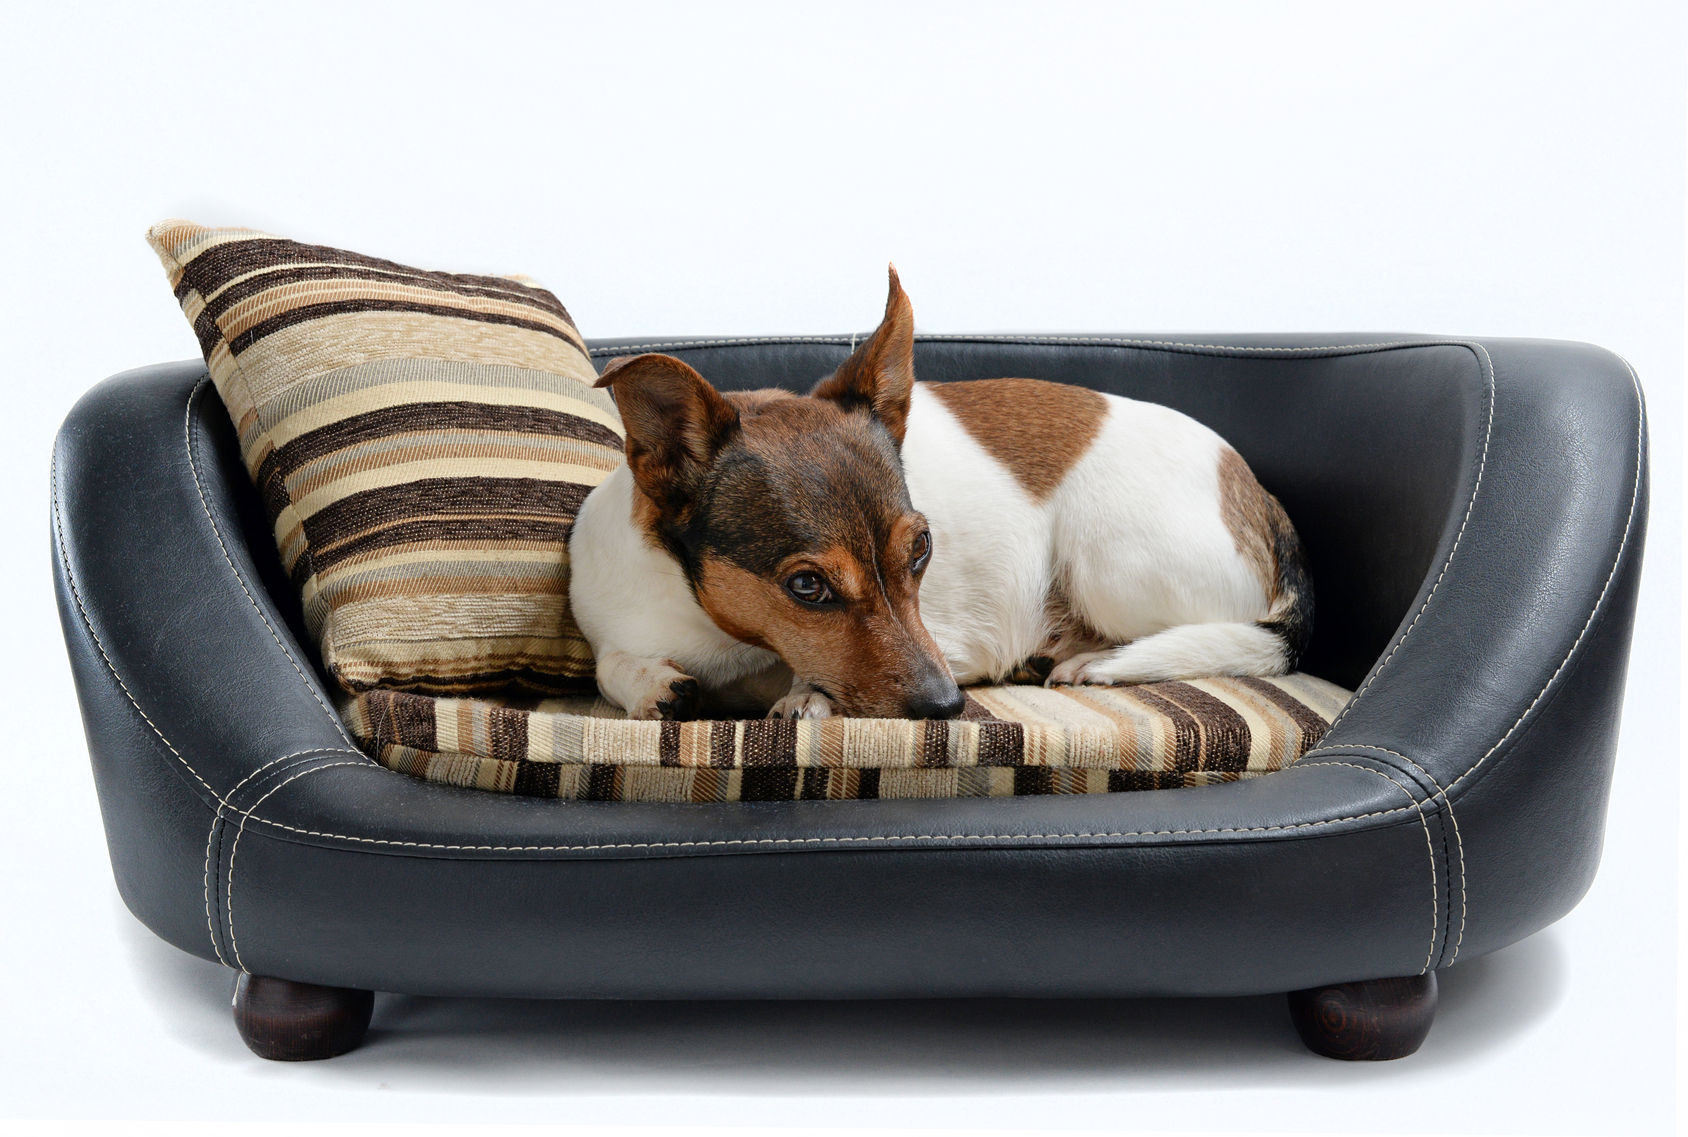 modern design ideas for pet beds that dogs and owners want  - modern pet beds to suit your decor